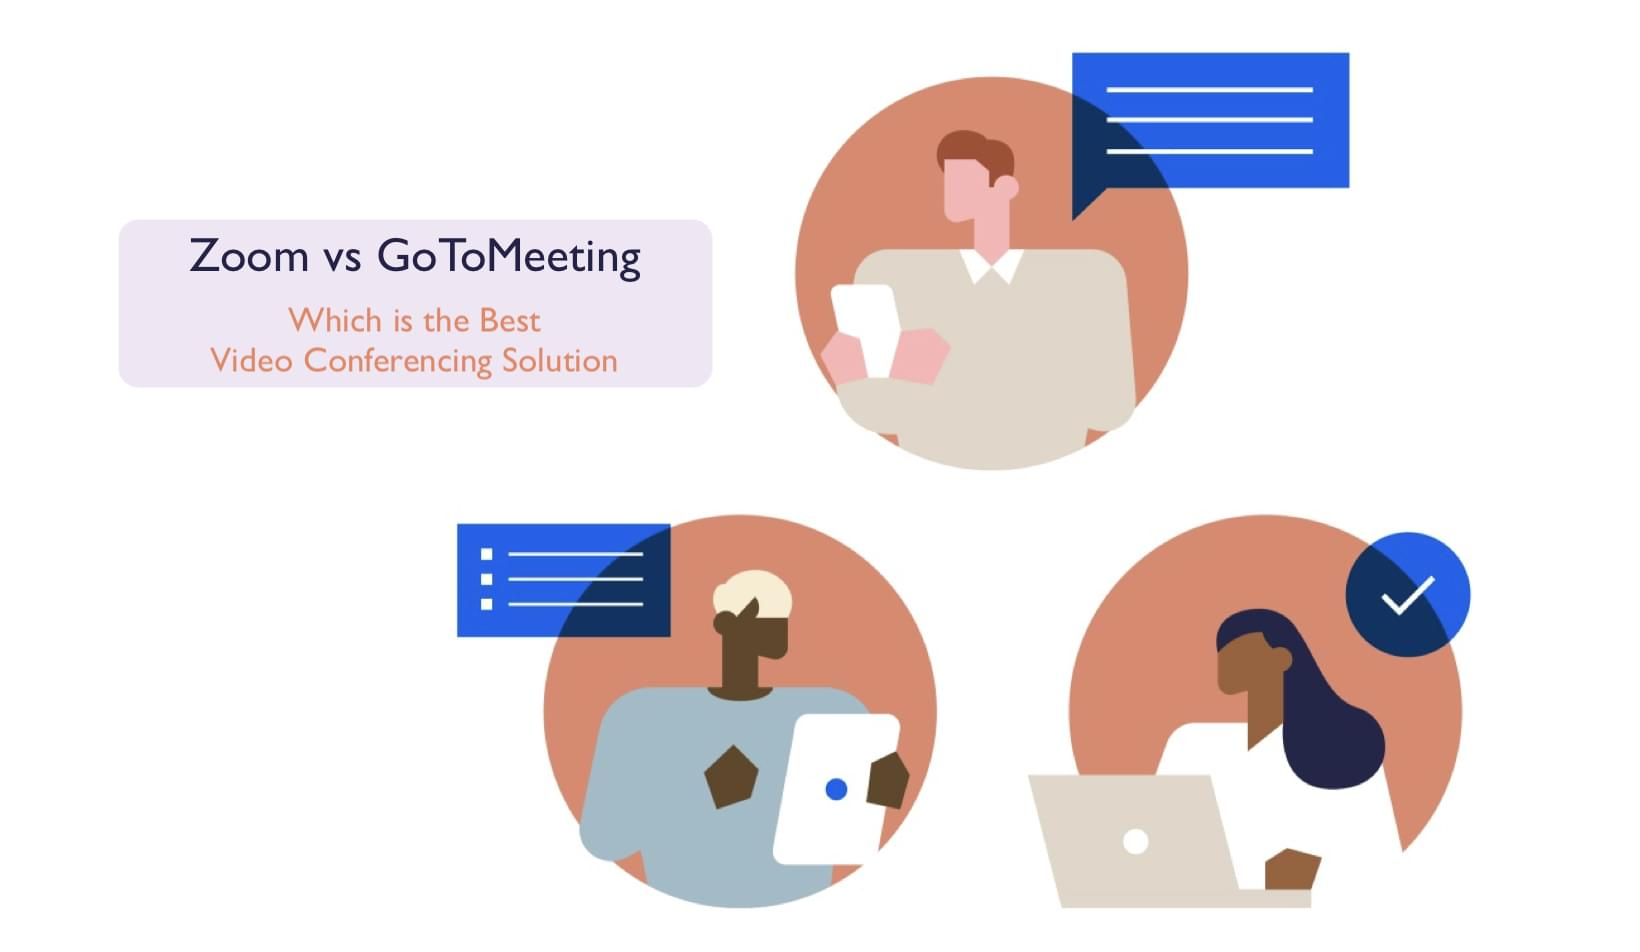 Zoom vs GoToMeeting: Which is the Best Video Conferencing Solution?